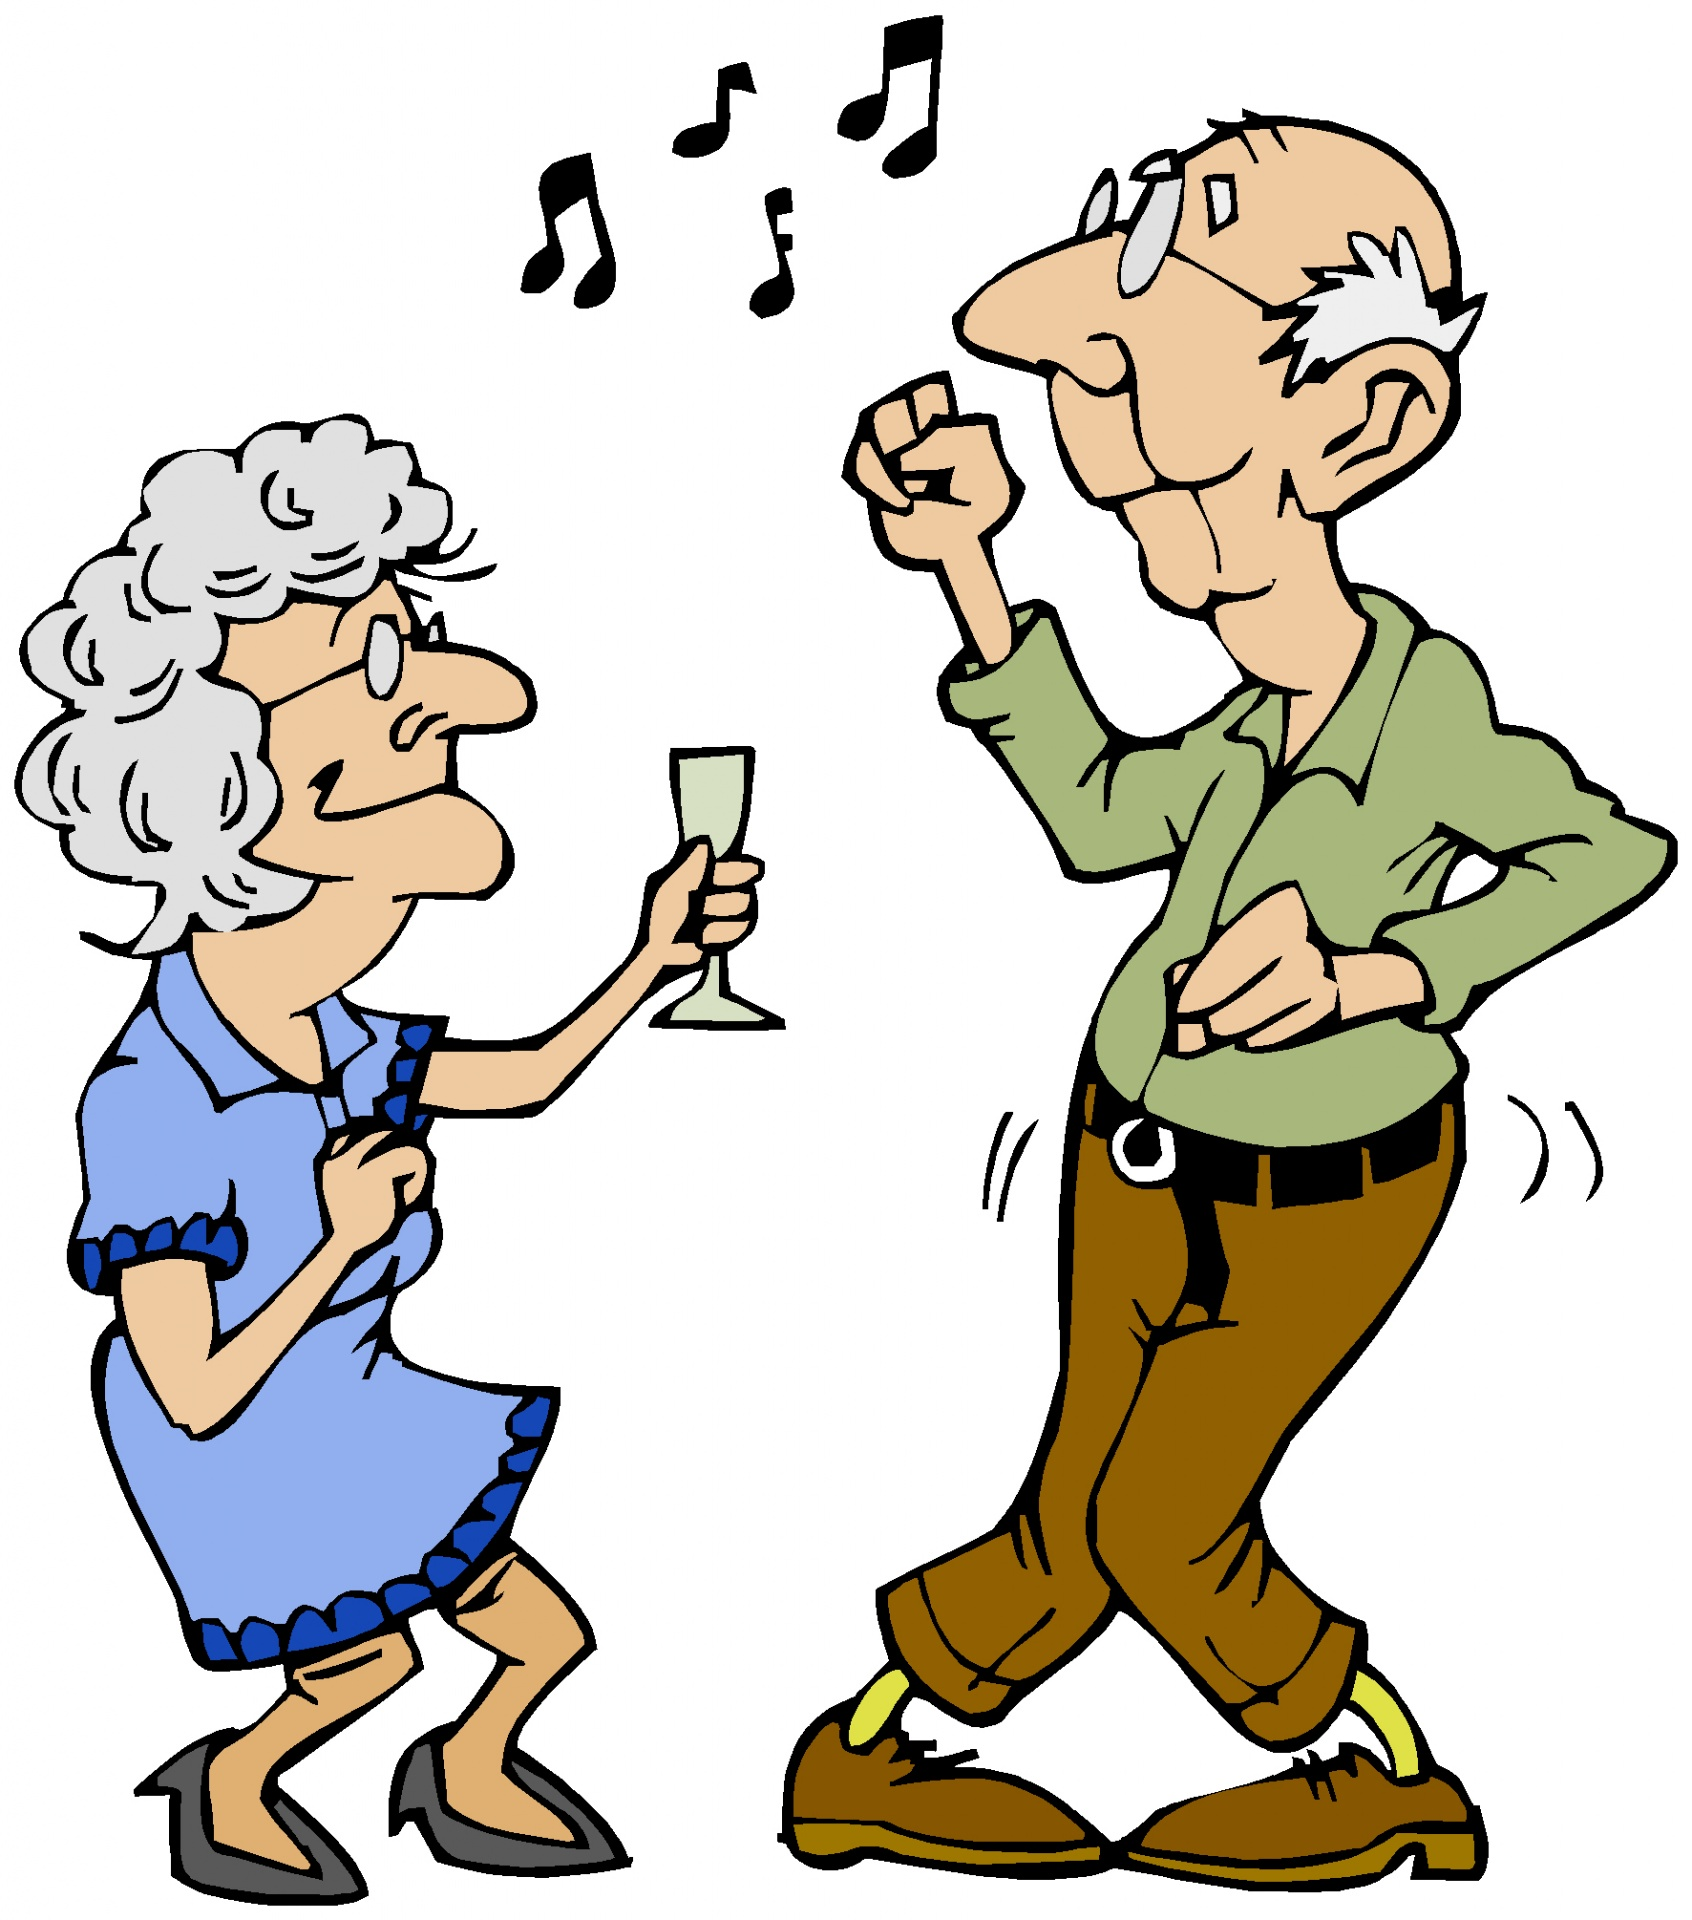 flirting moves that work on women day 2016 images clipart